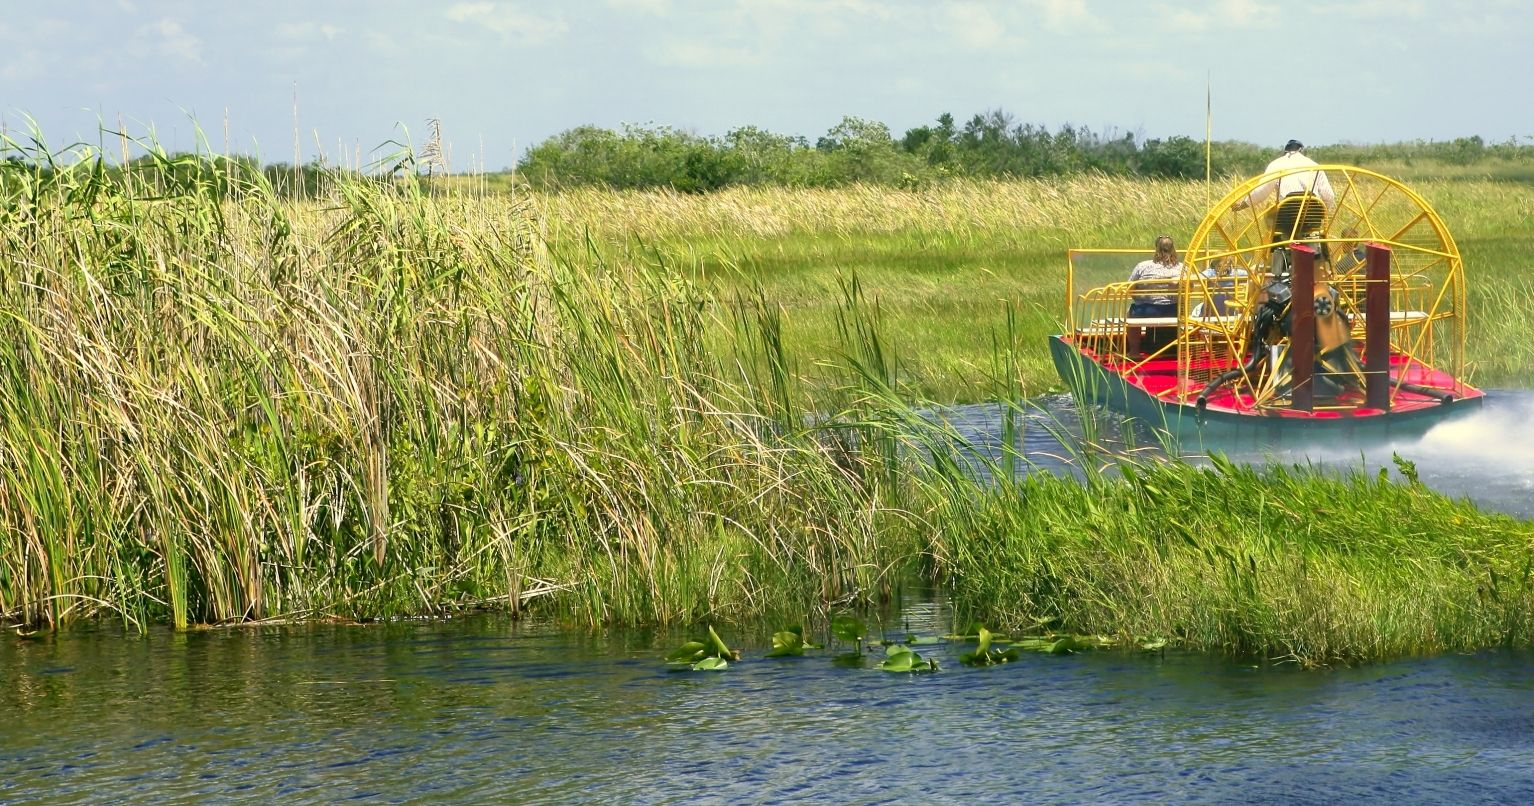 St. John's River Airboat Safari Ride Florida Tinggly Experience Gifts